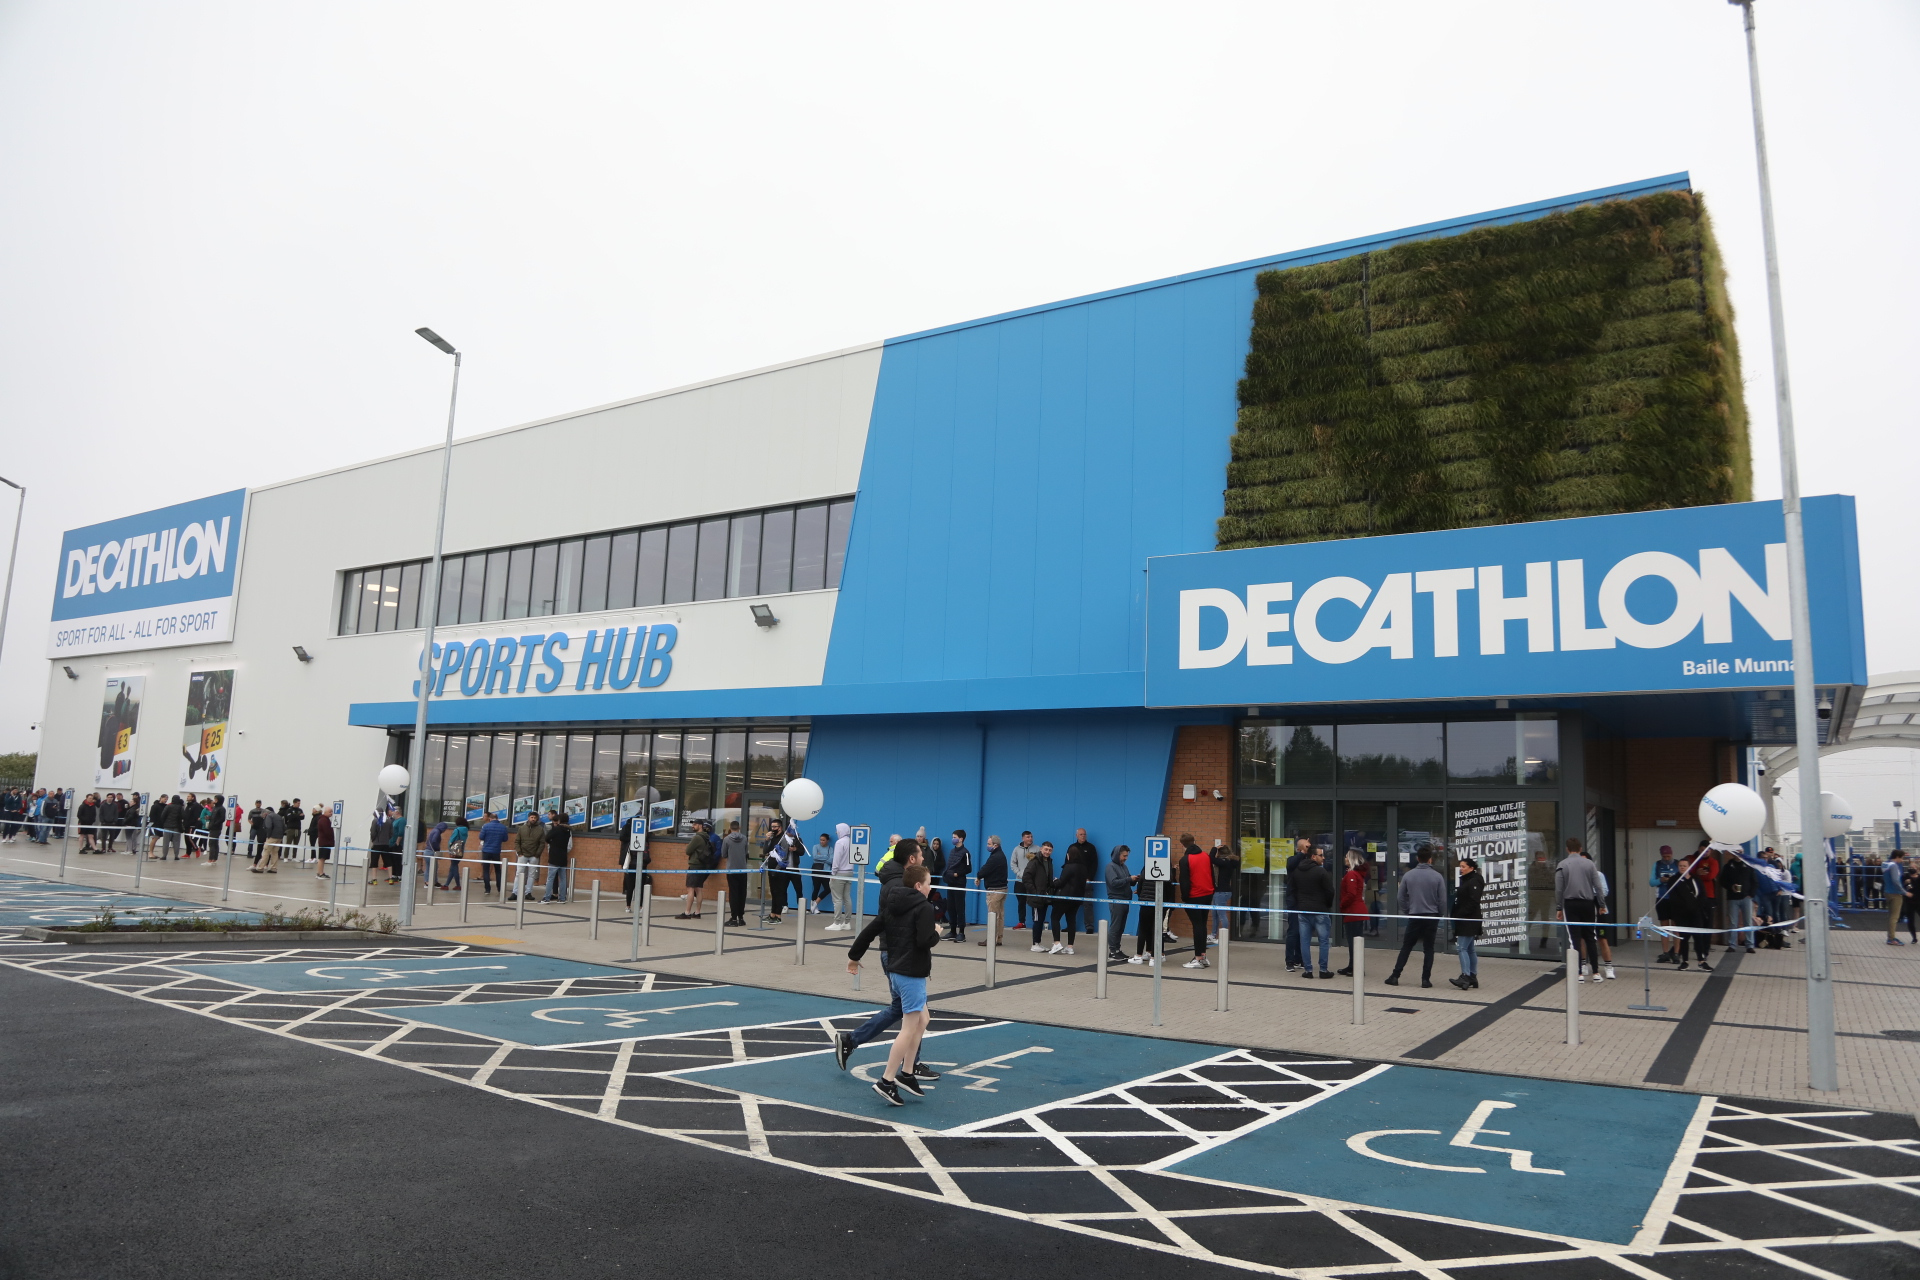 French Retail Giant Decathlon Moves to Brossard